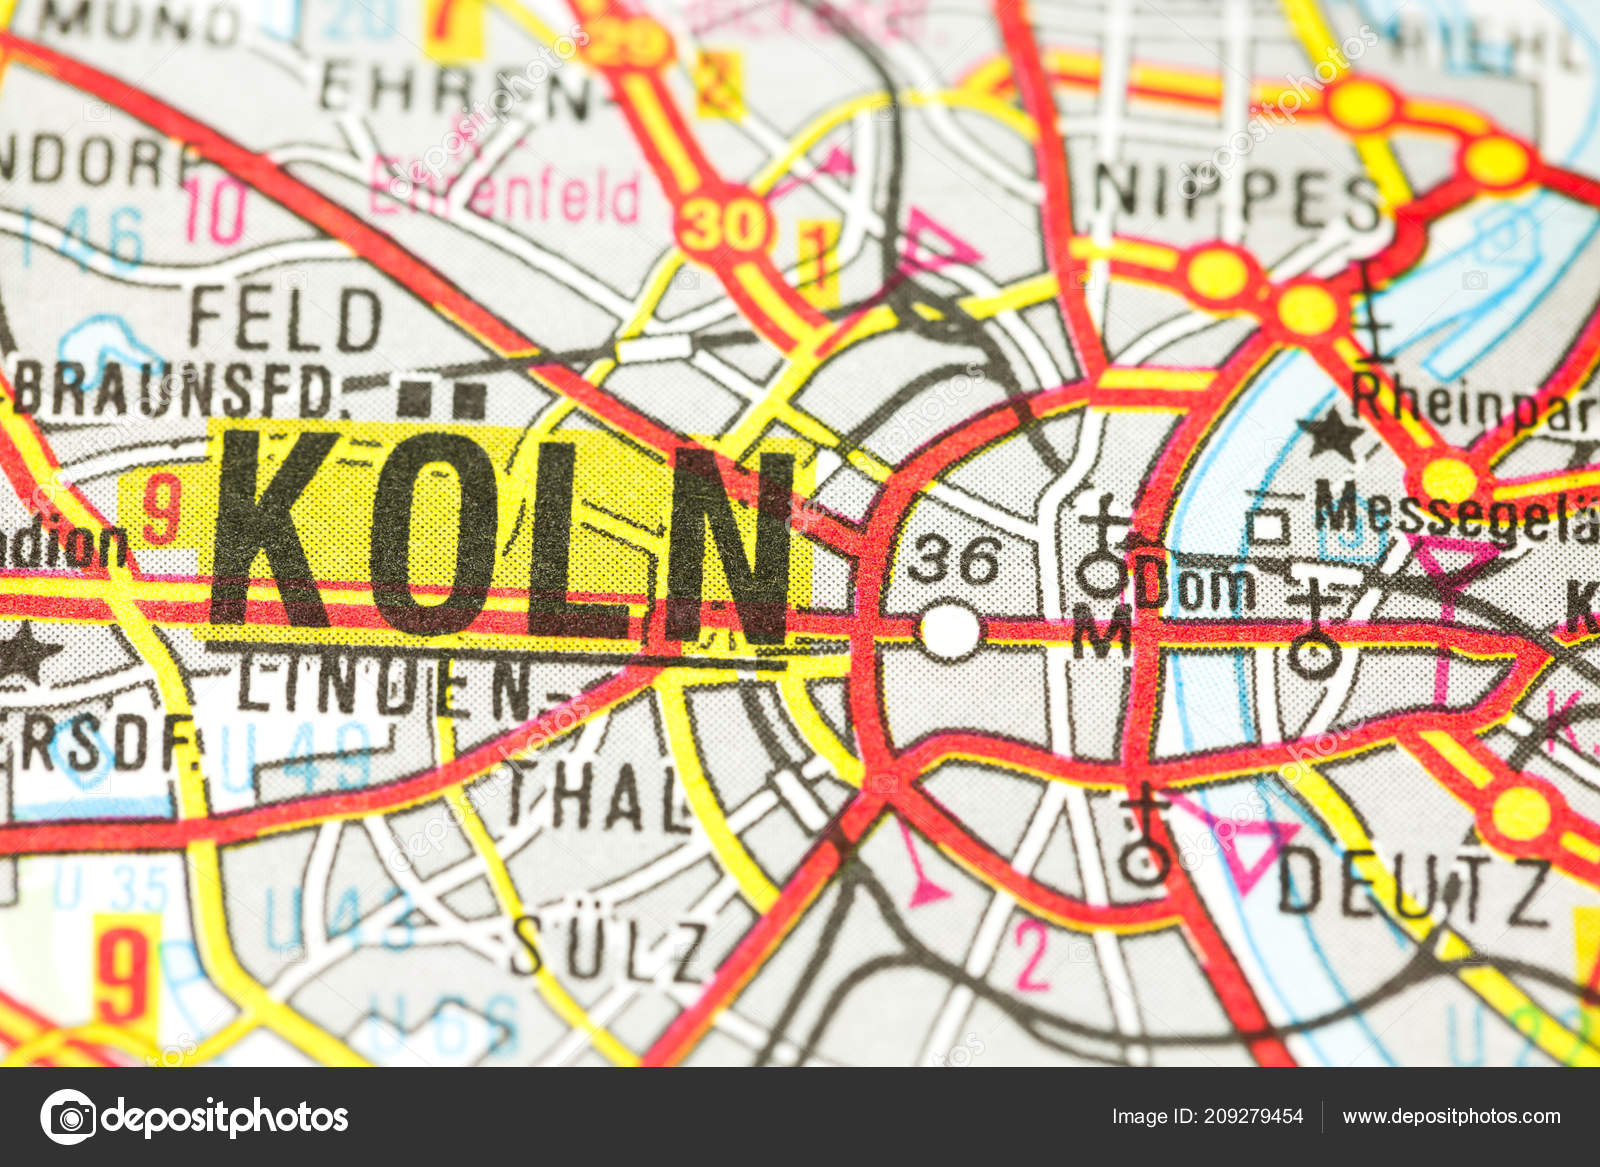 Cologne On Map Of Germany.Cologne Cathedral Map Cologne North Rhine Westphalia Germany Stock